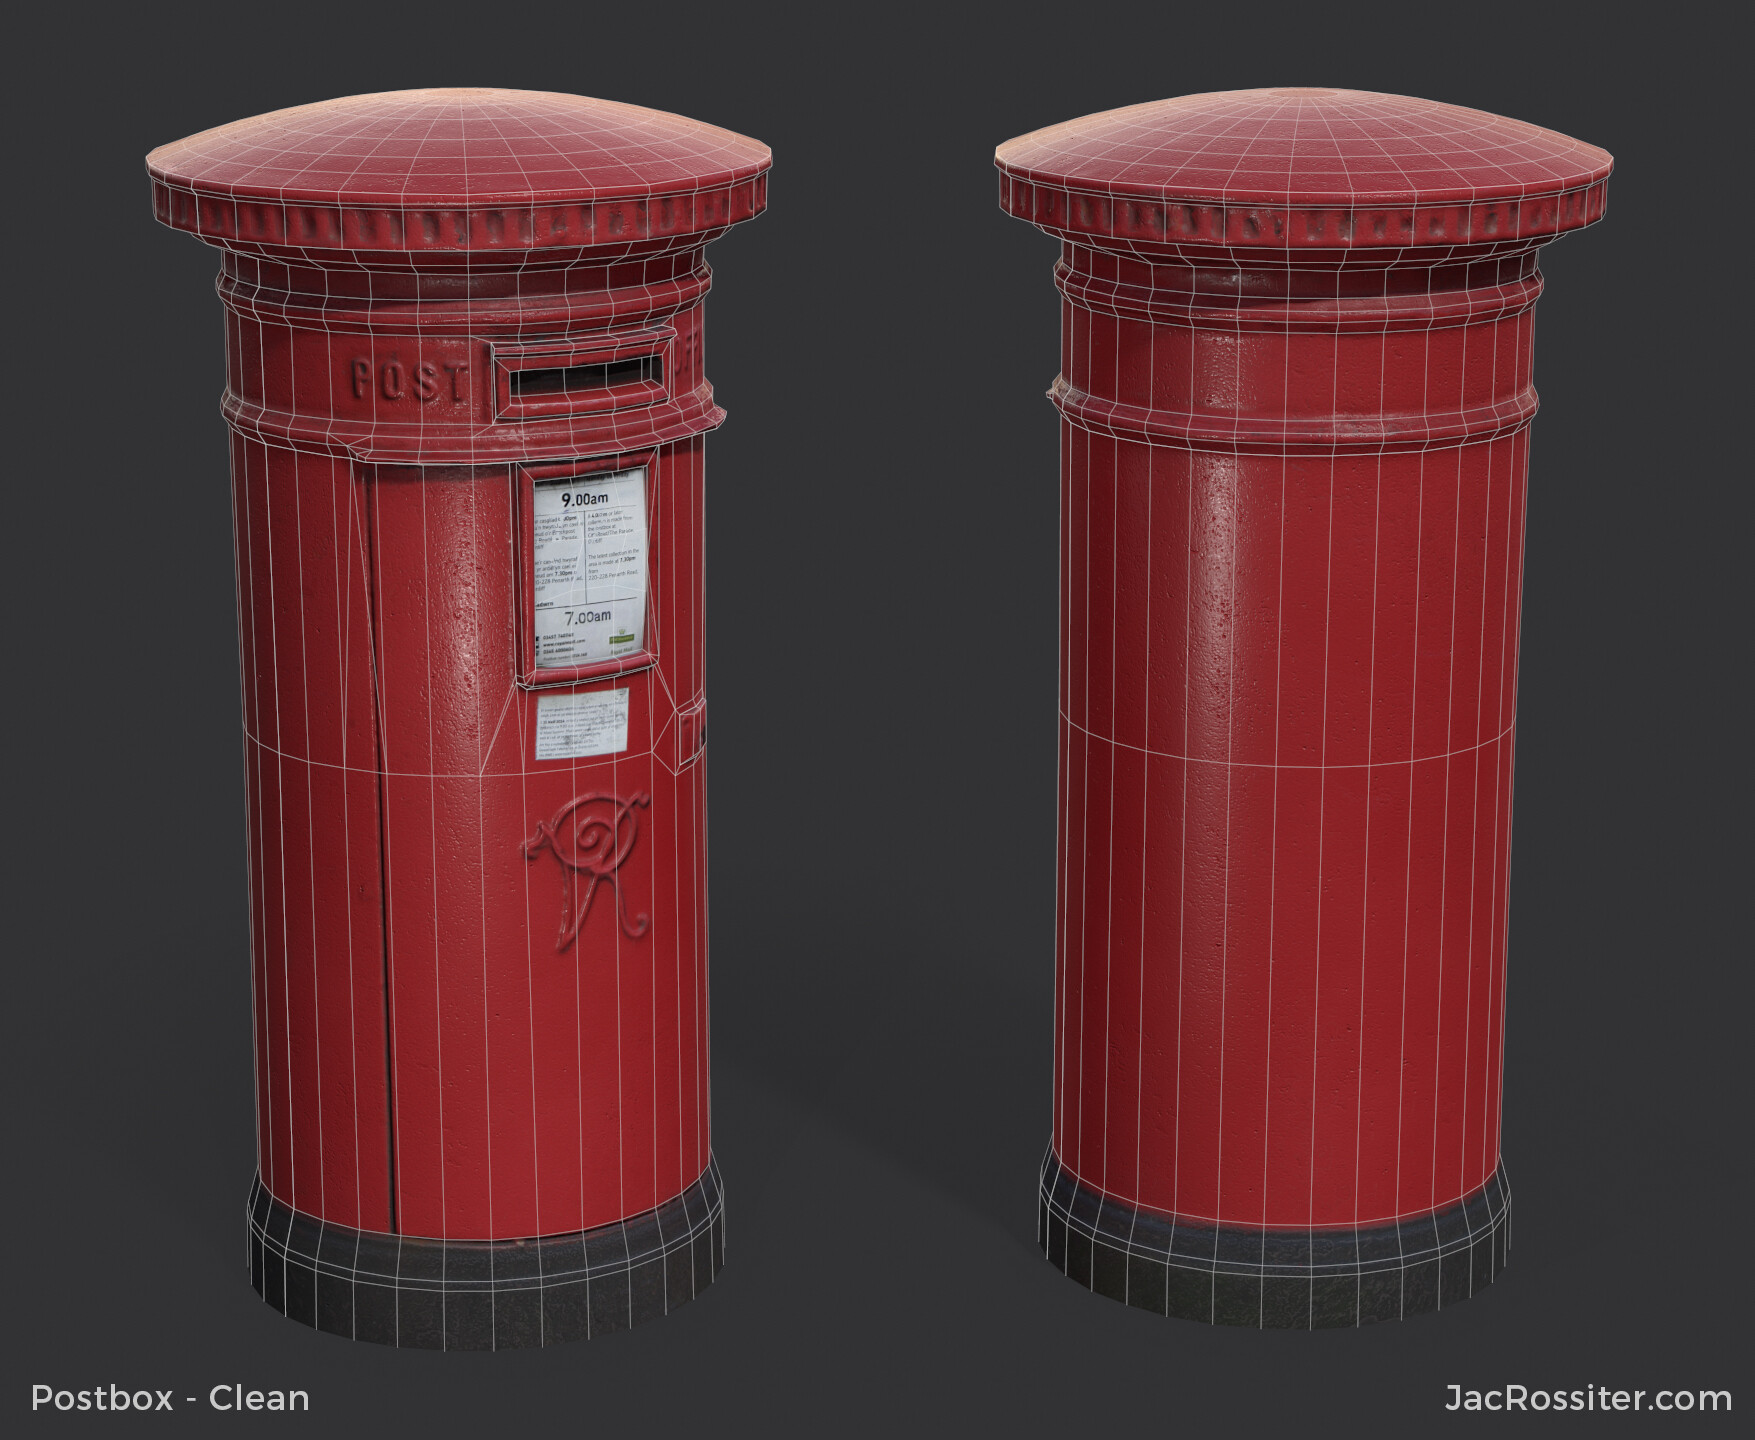 Jac rossiter postbox render b w